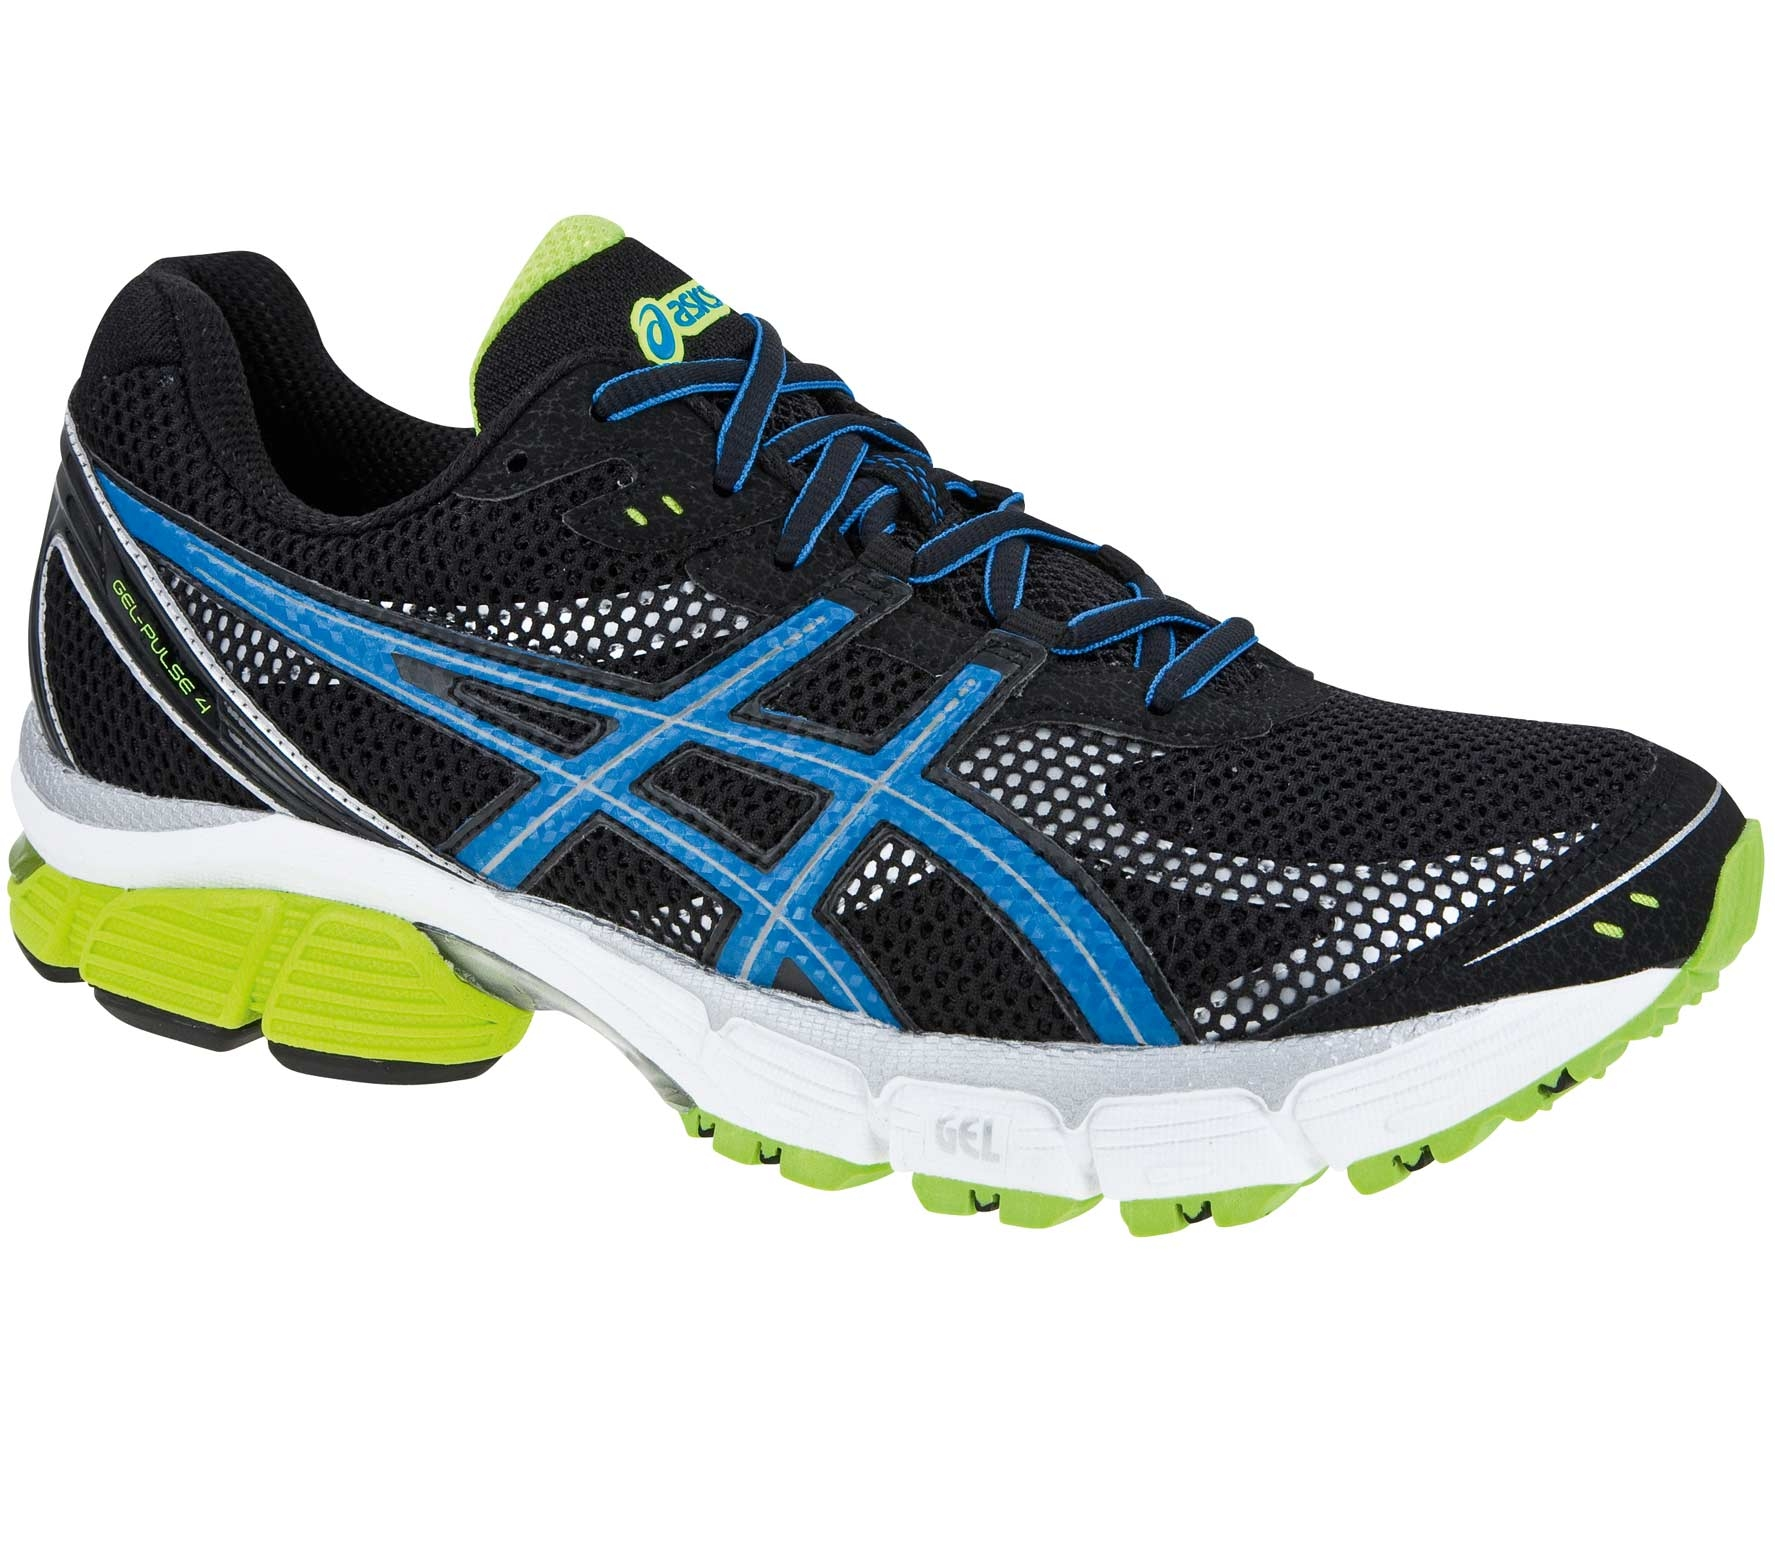 Asics - Running shoes Men Gel-Pulse 4 - FS13